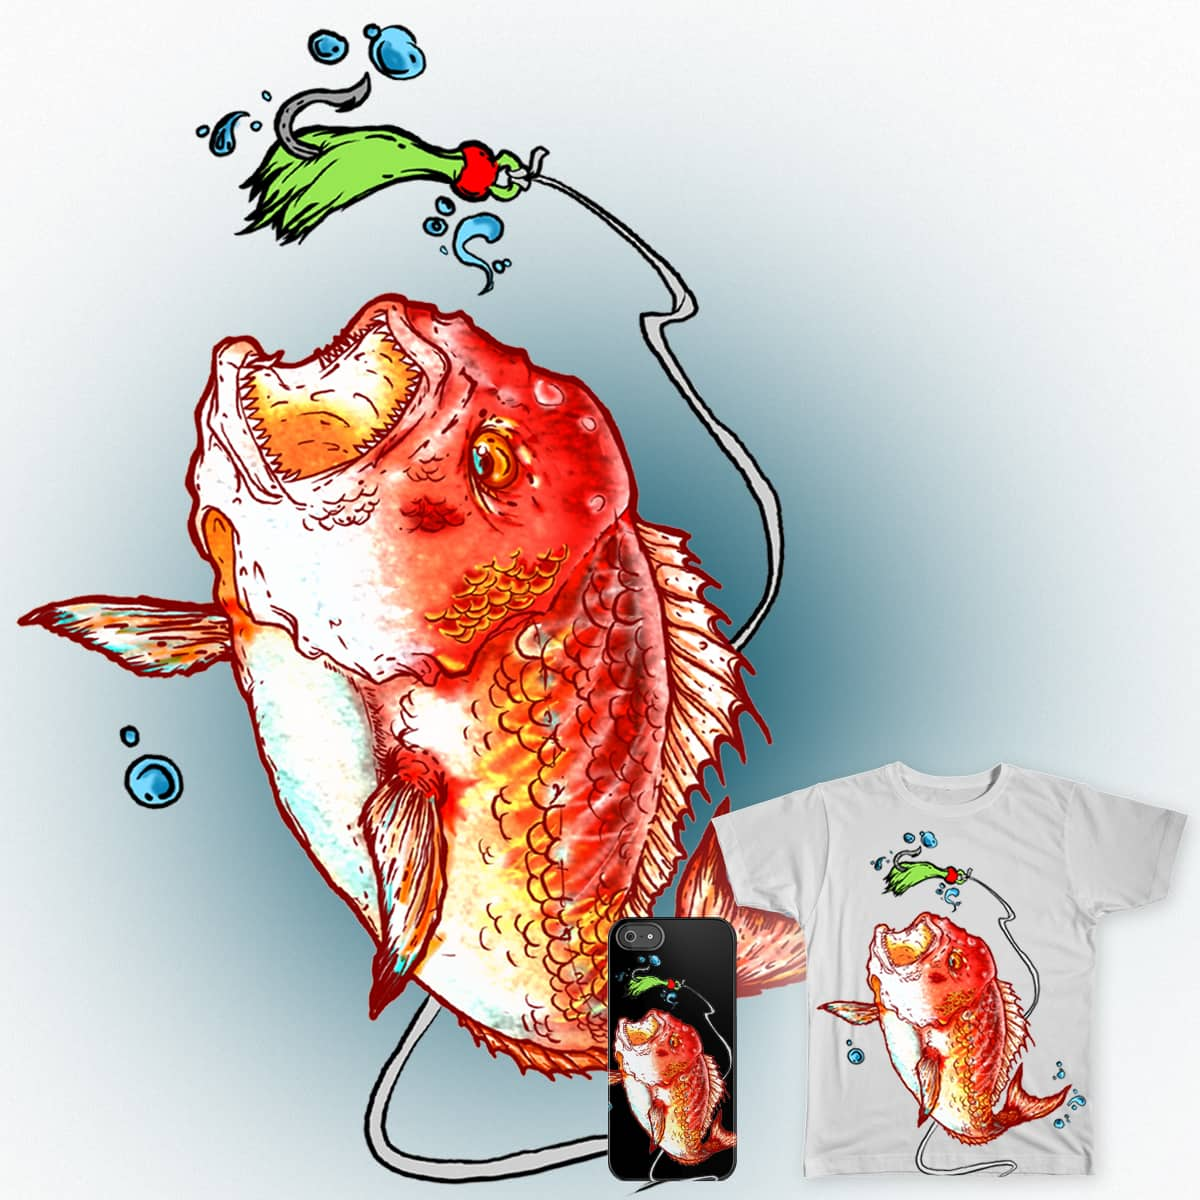 BAIT by guiven on Threadless